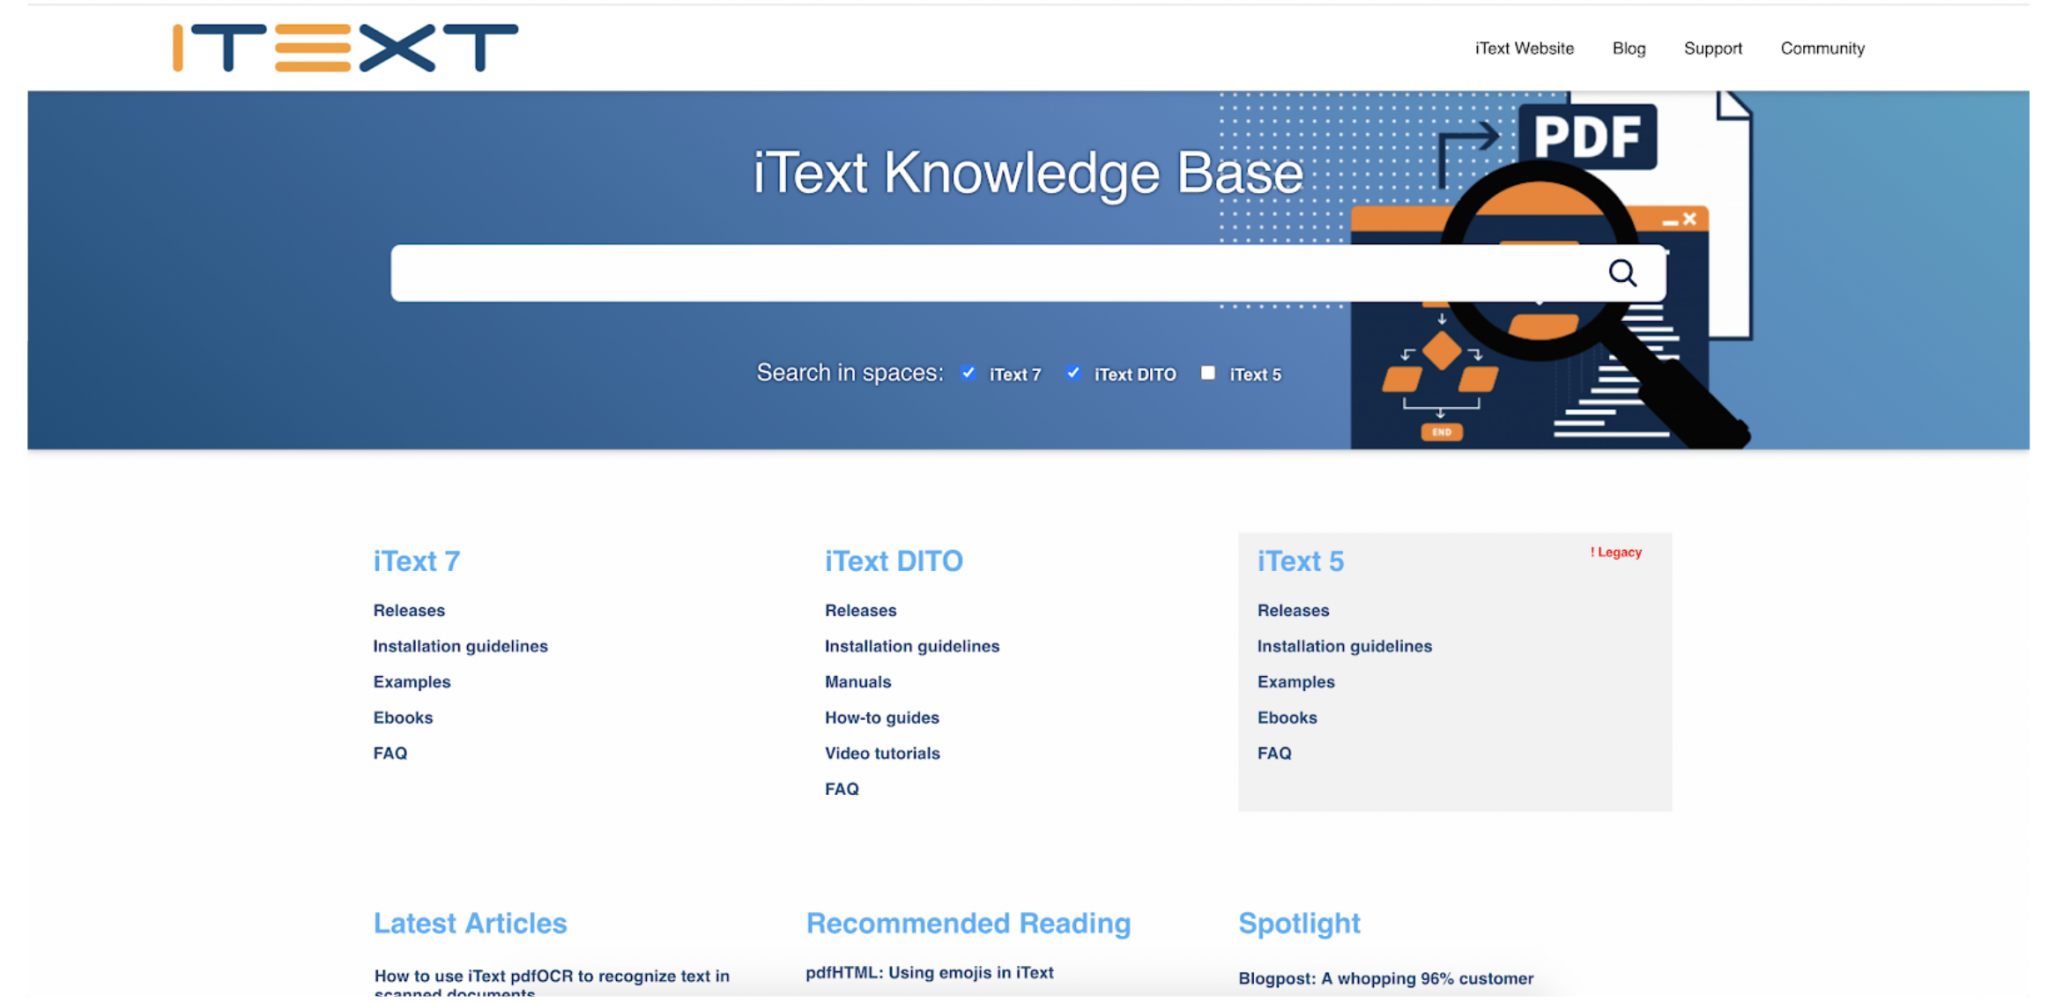 iText Knowledge Base